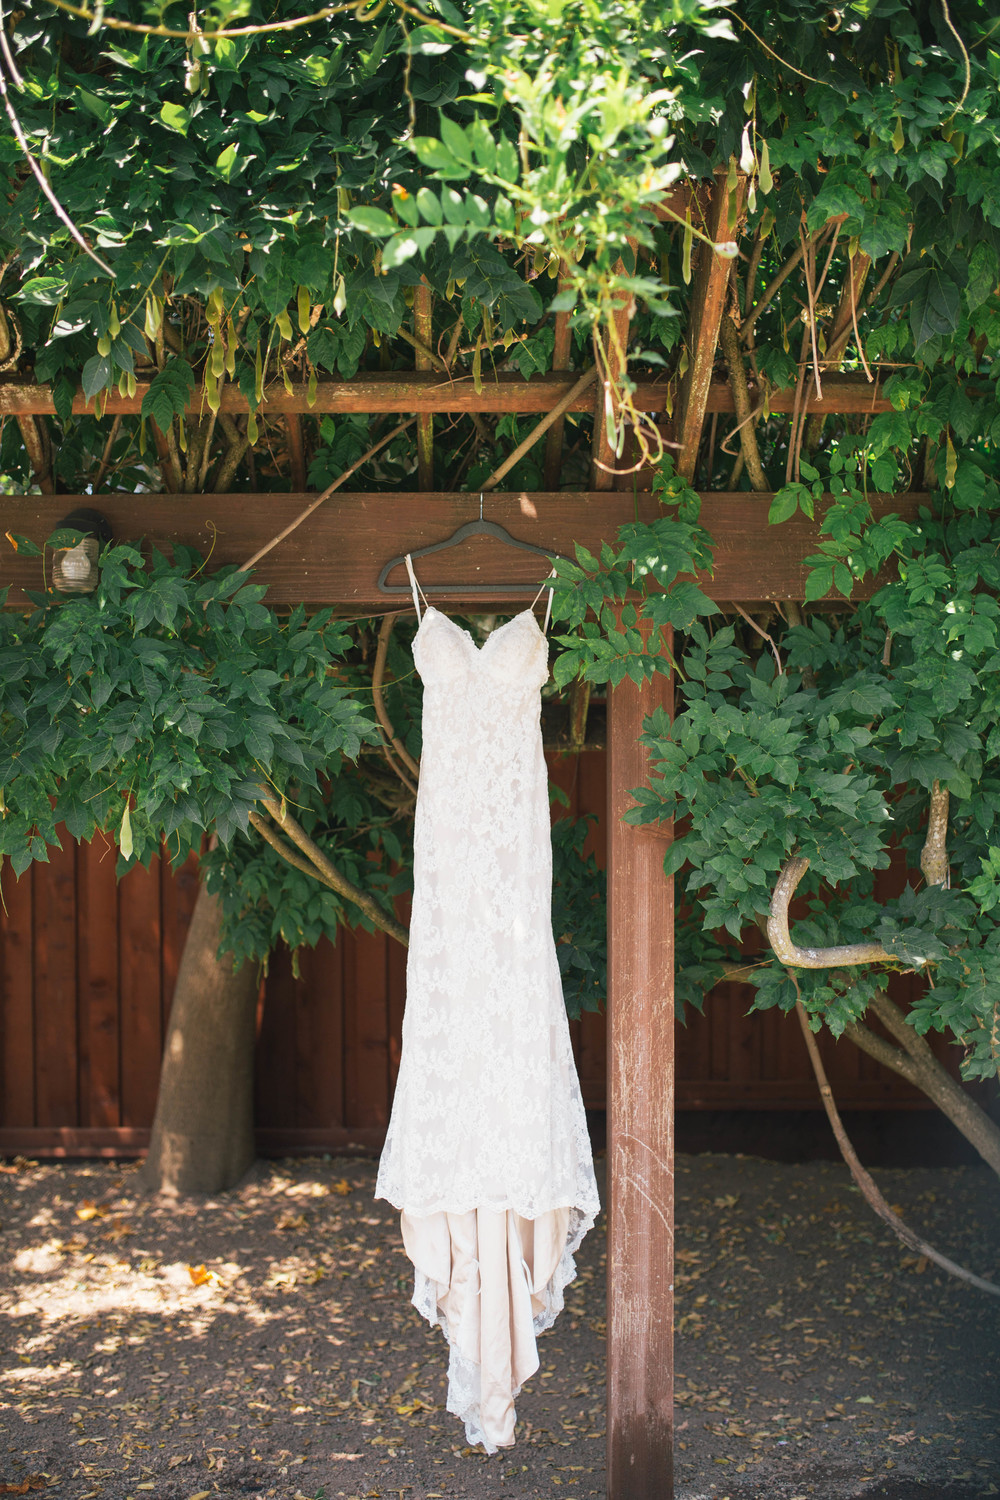 sonoma-county-wedding-photographer-details-backyard-dress